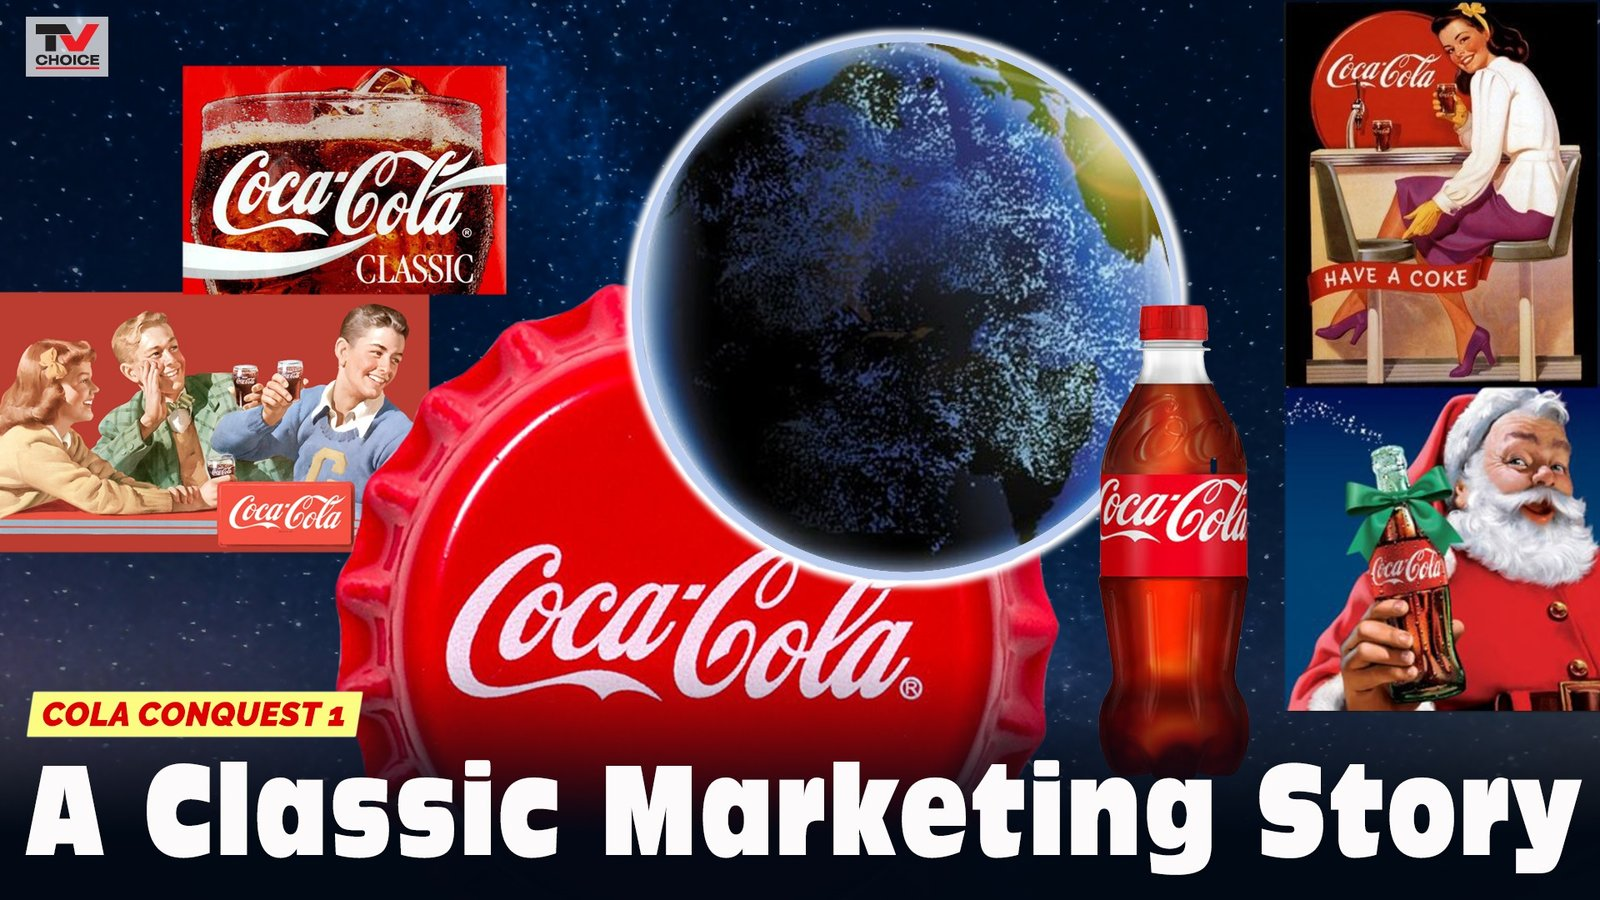 Cola Conquest 1: Coca-Cola: A Classic Marketing Story